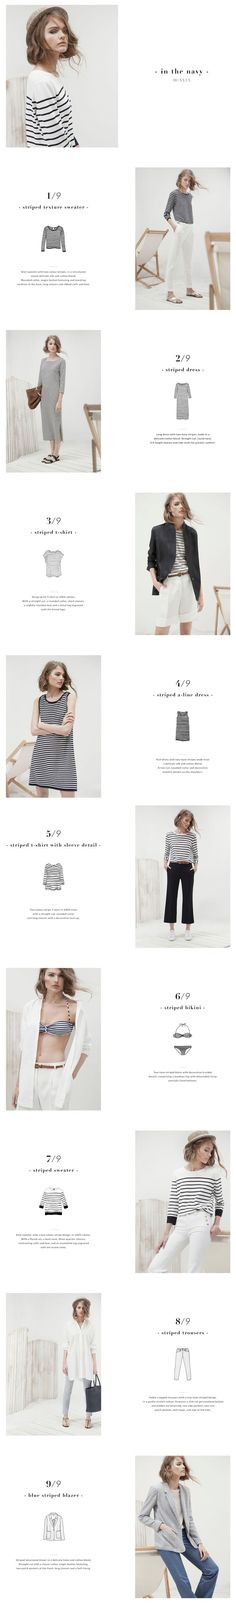 Massimo Dutti – In The Navy